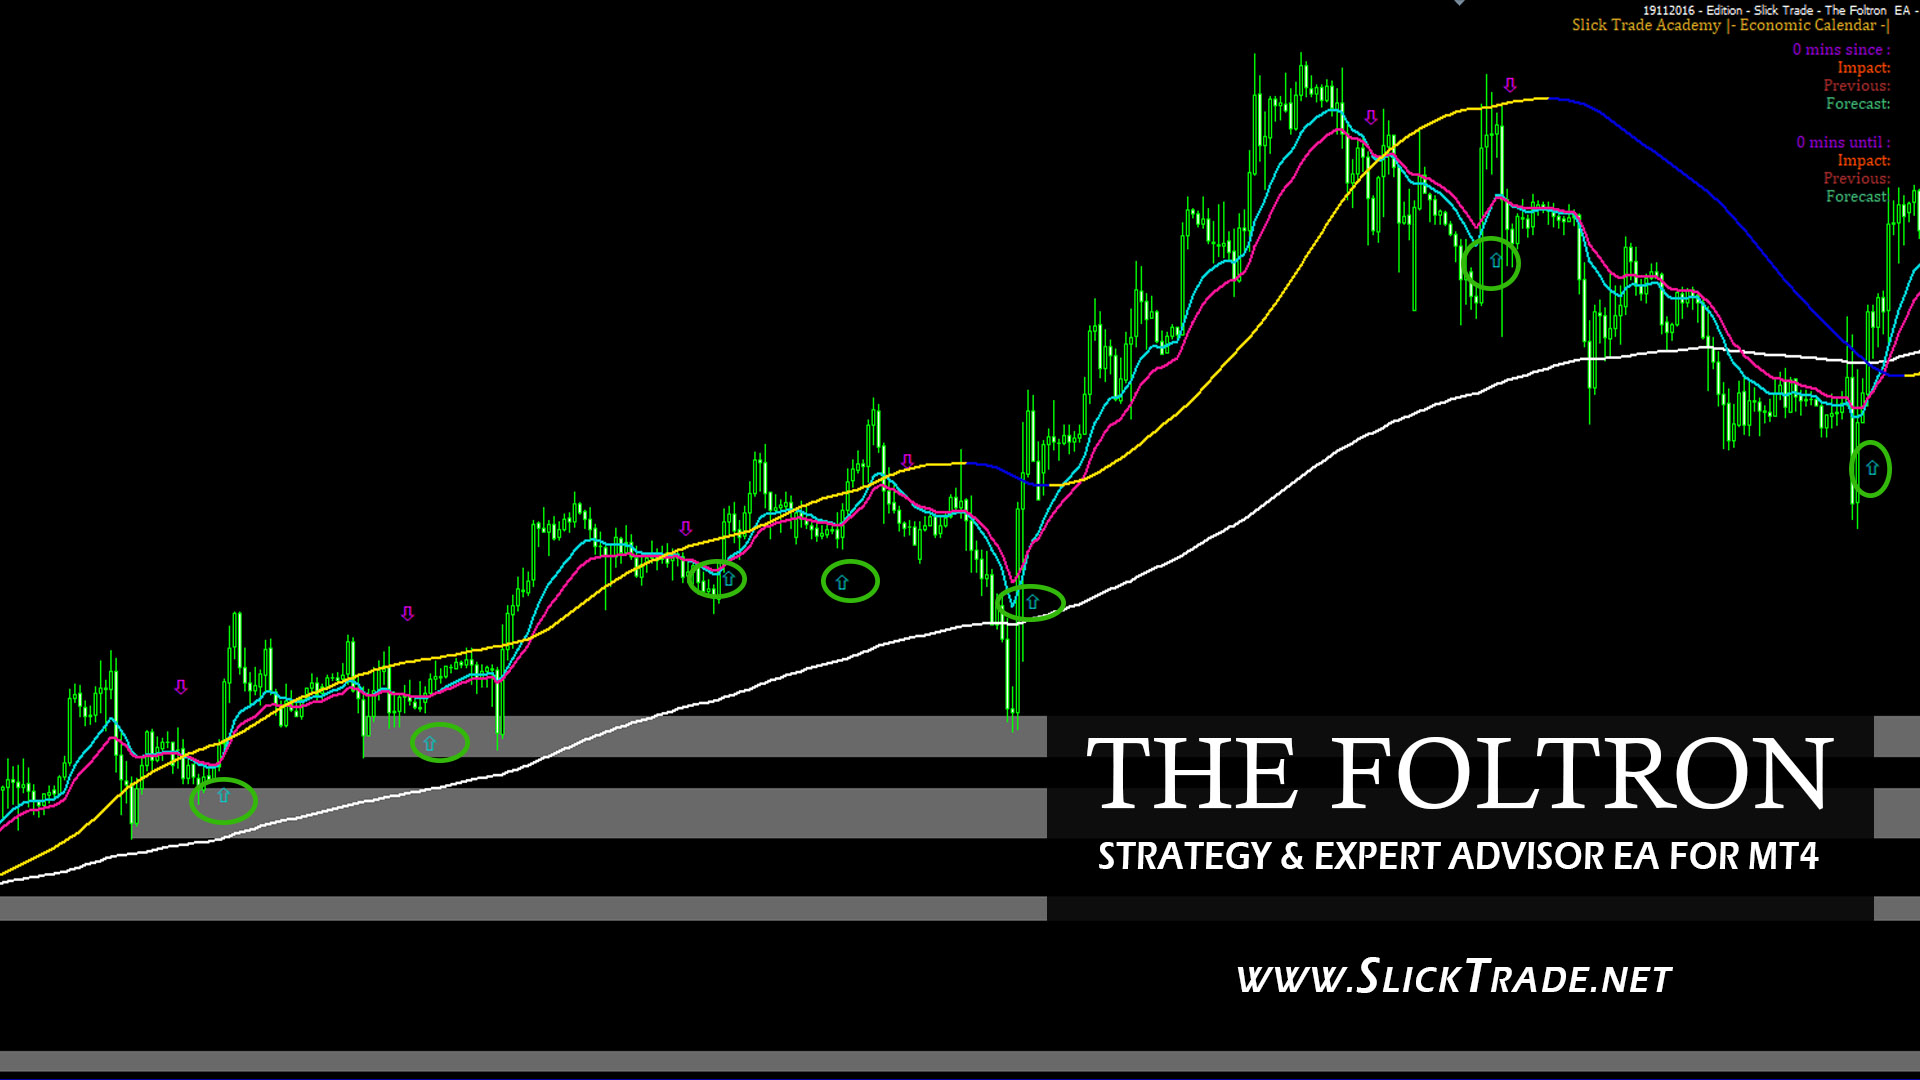 Strategy & Expert Advisor EA for MT4 foltron forex trading auto trader Strategy & Expert Advisor EA for MT4